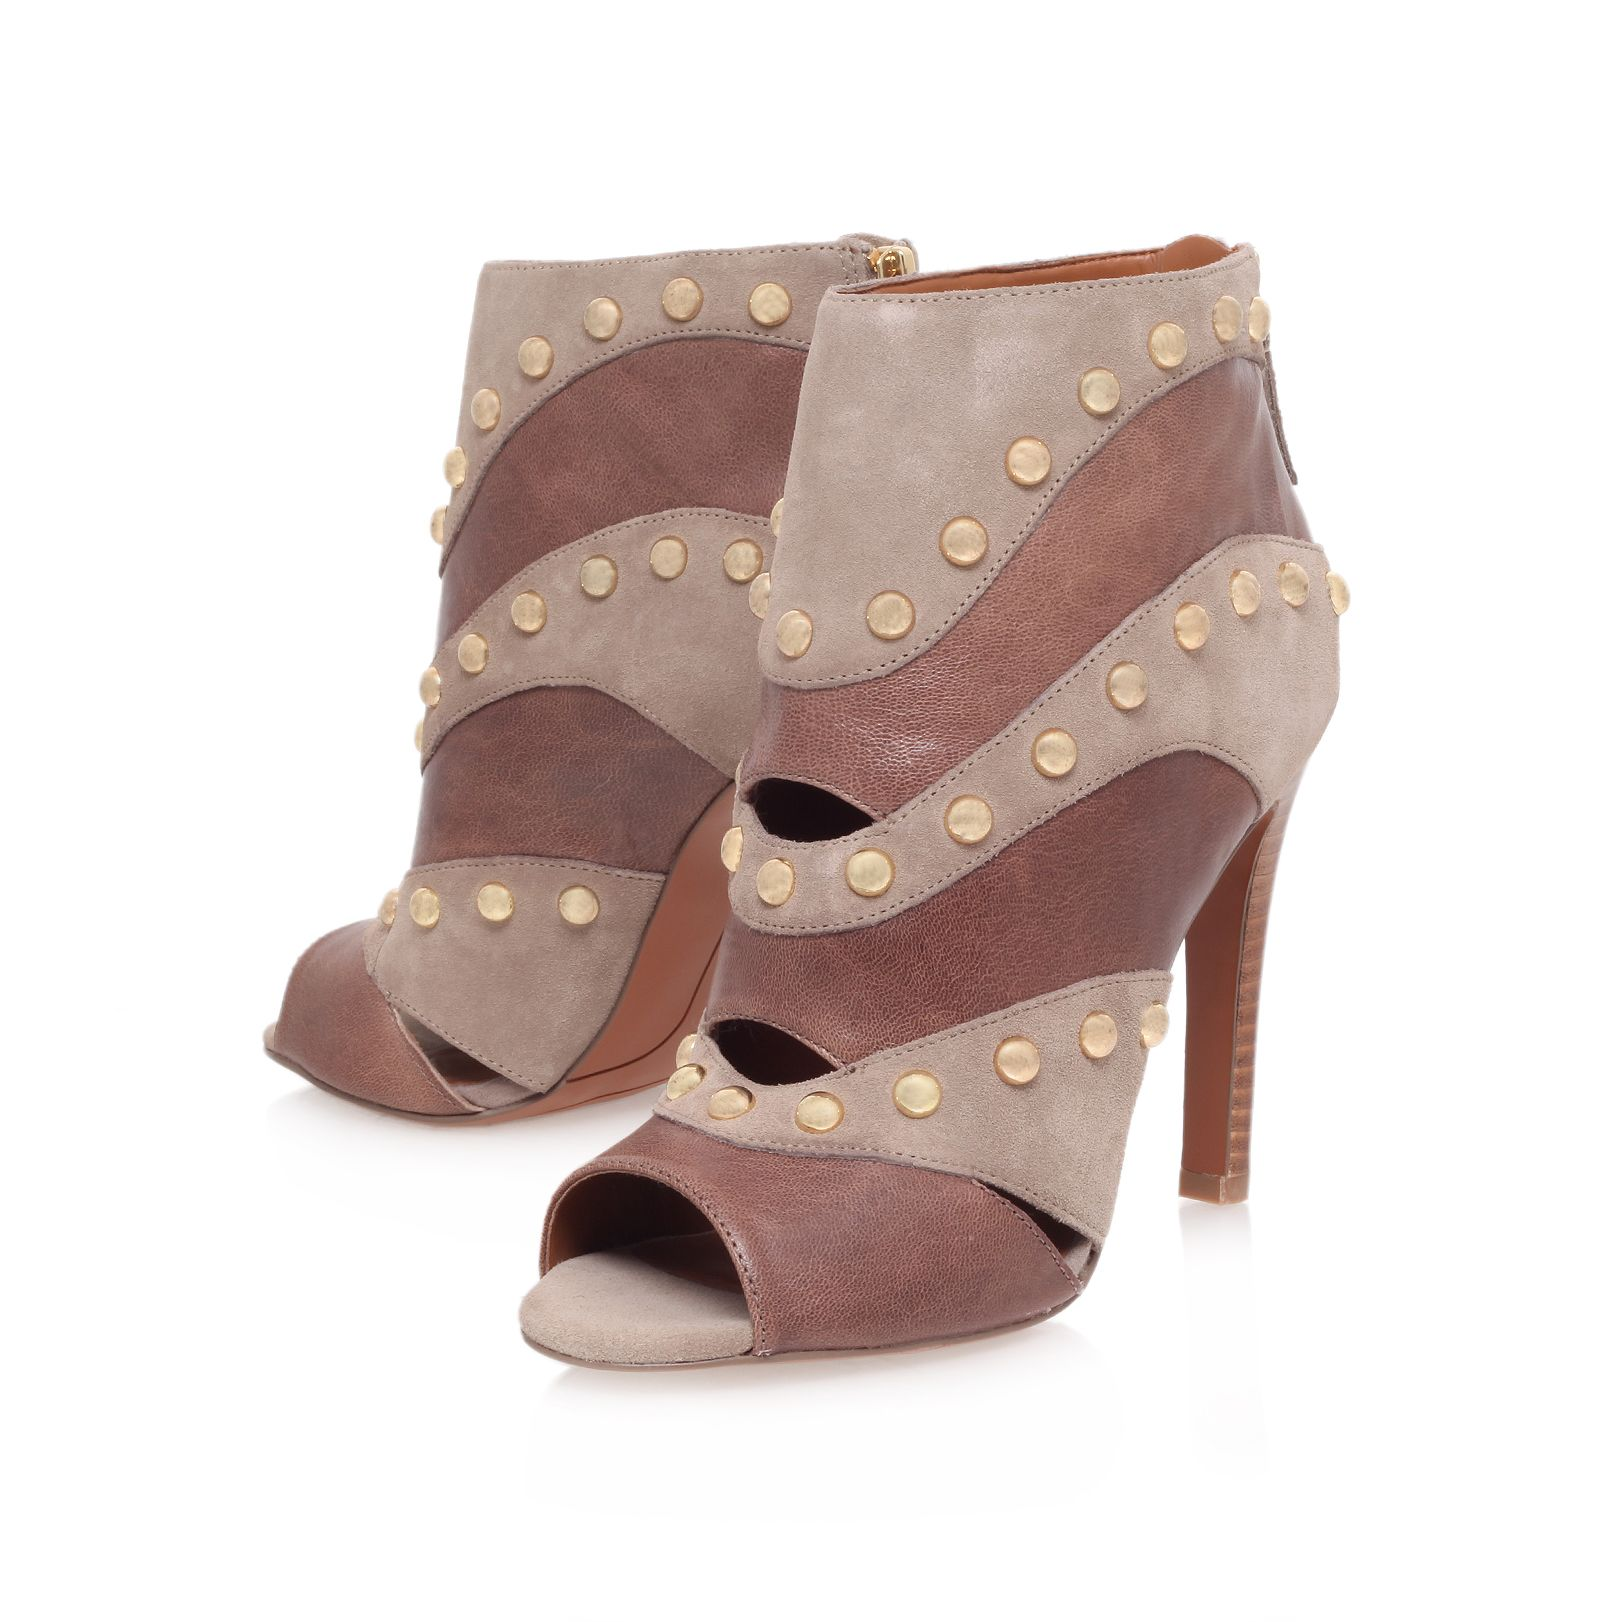 Ezzy high heel studded peep toe ankle boot